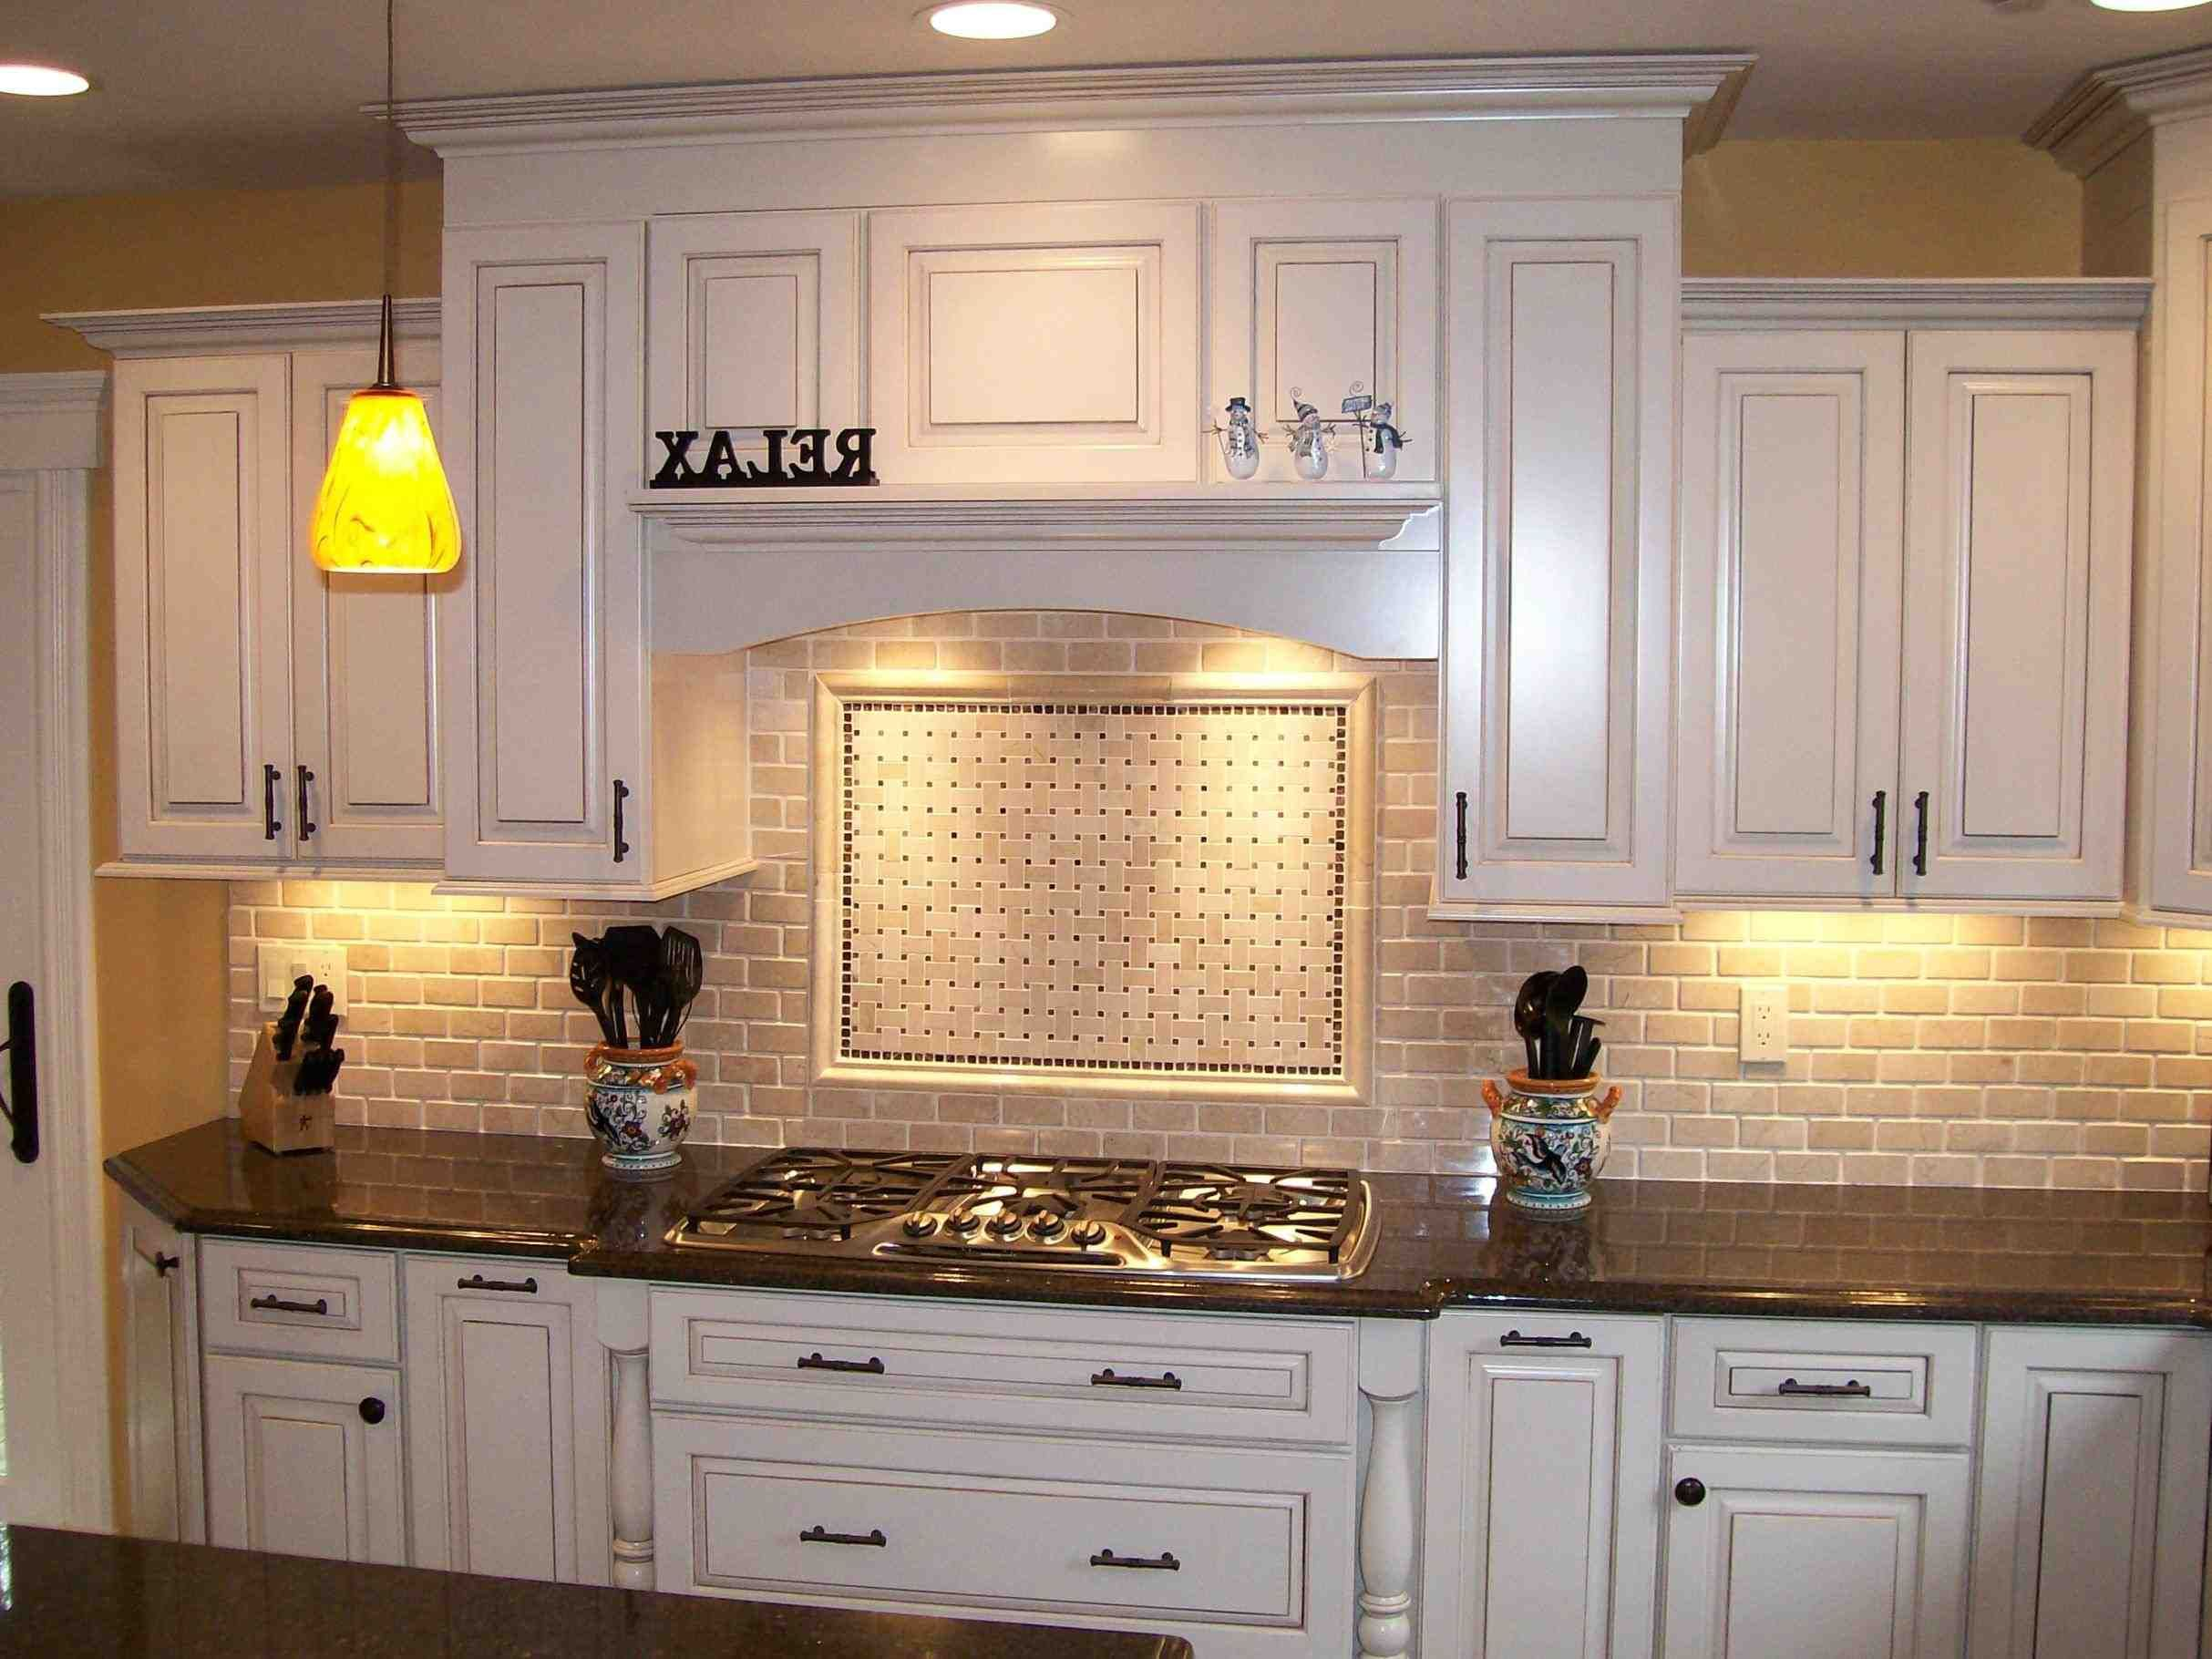 Kitchen Backsplash Ideas Black Granite Countertops White ... on Kitchen Backsplash Ideas With Black Granite Countertops  id=41801